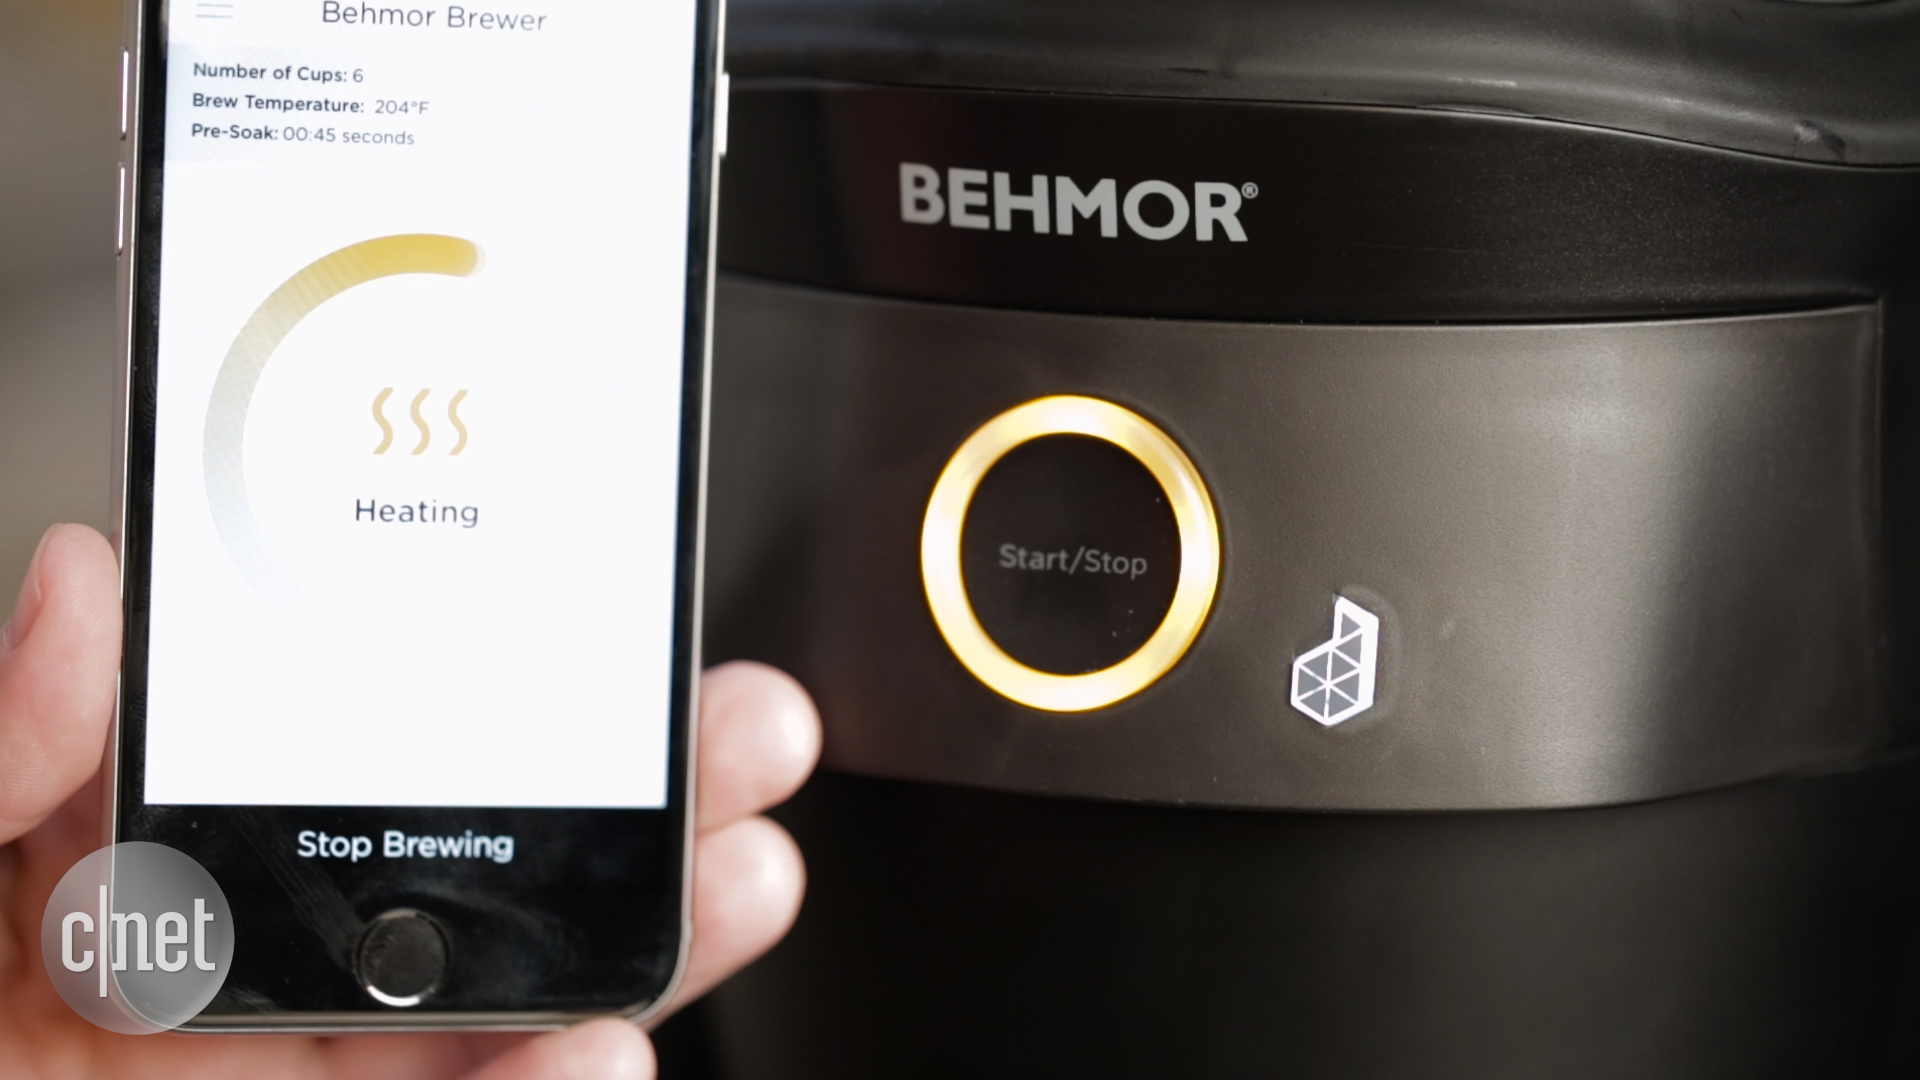 Video: A great drip coffee maker with some useful smarts